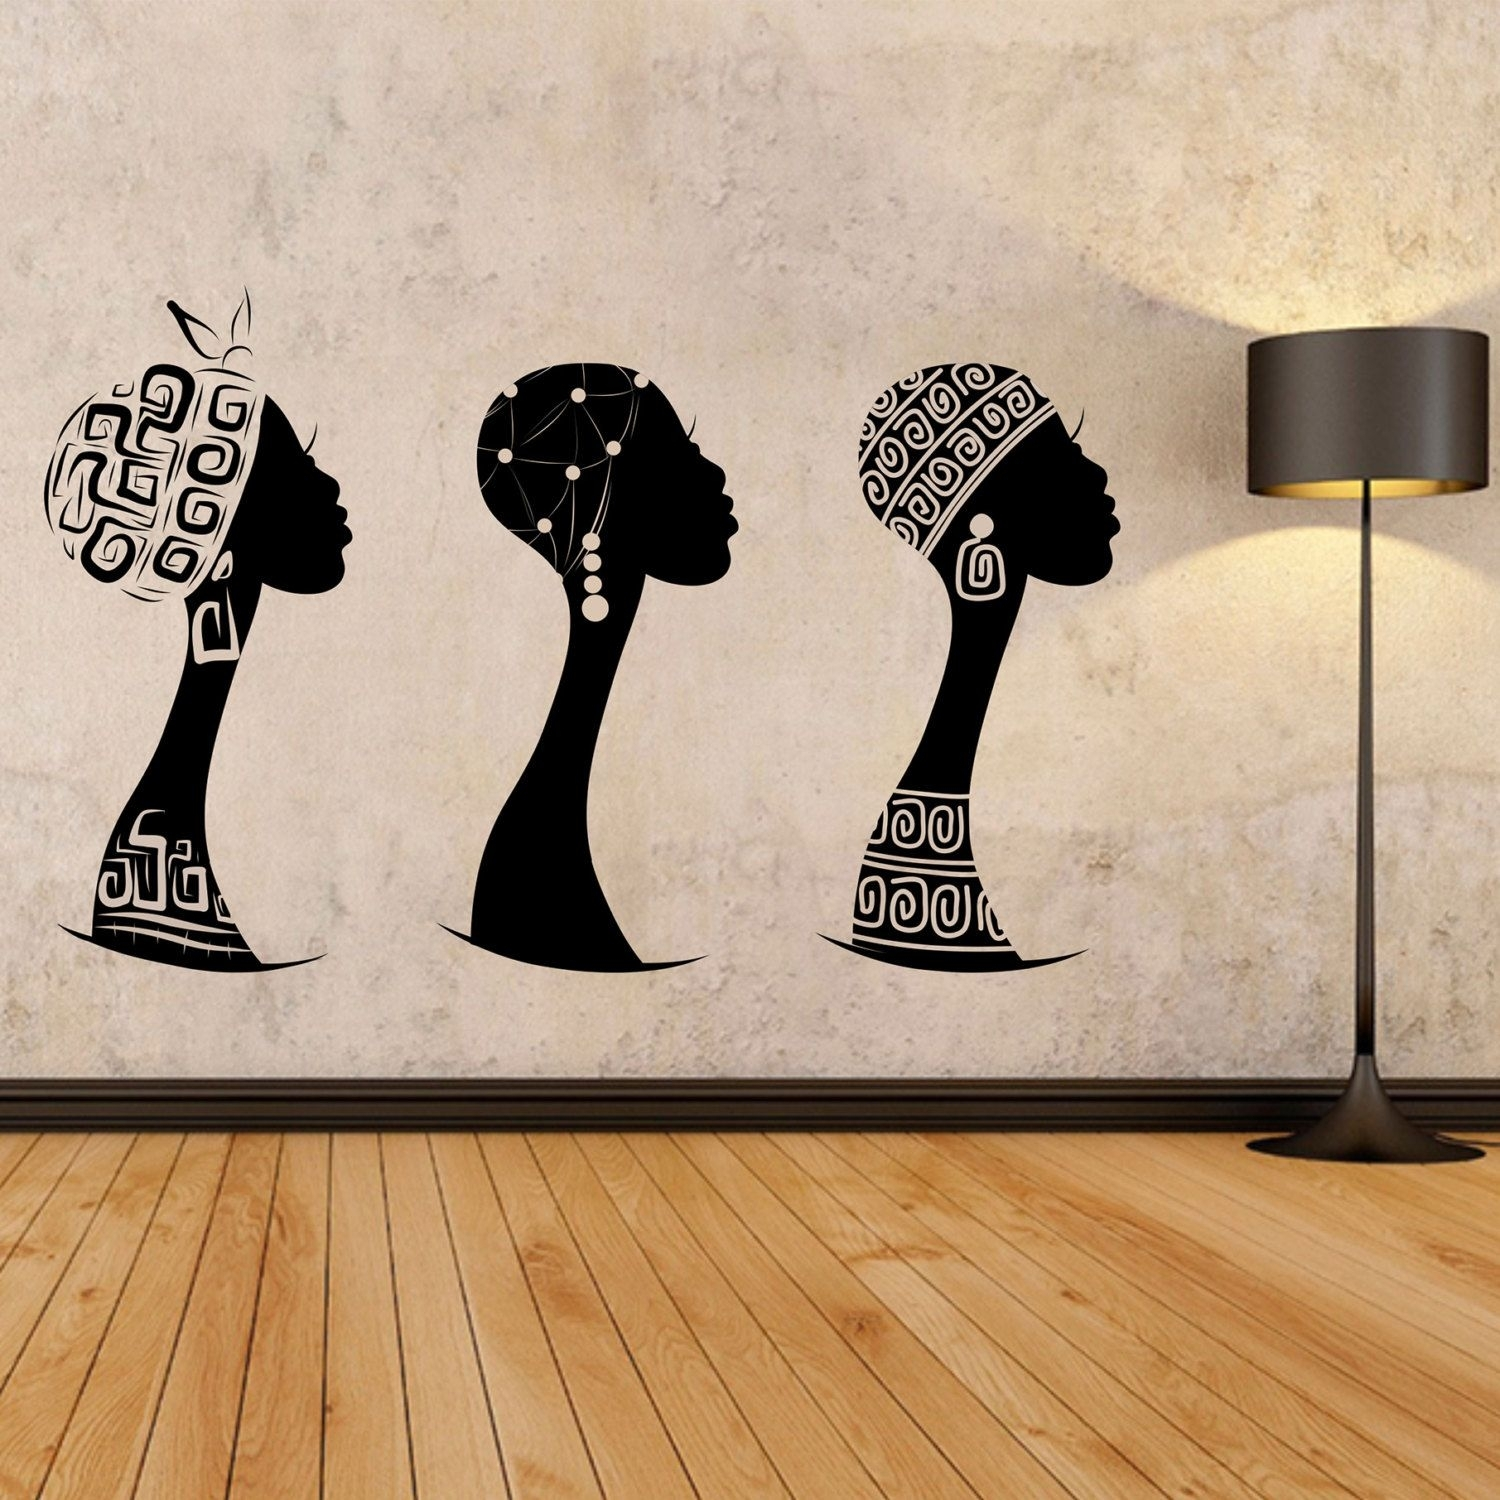 Afro Art | Etsy | Bb Art | Pinterest | Afro Art, Africans And Paintings Regarding Latest African Wall Art (View 1 of 15)